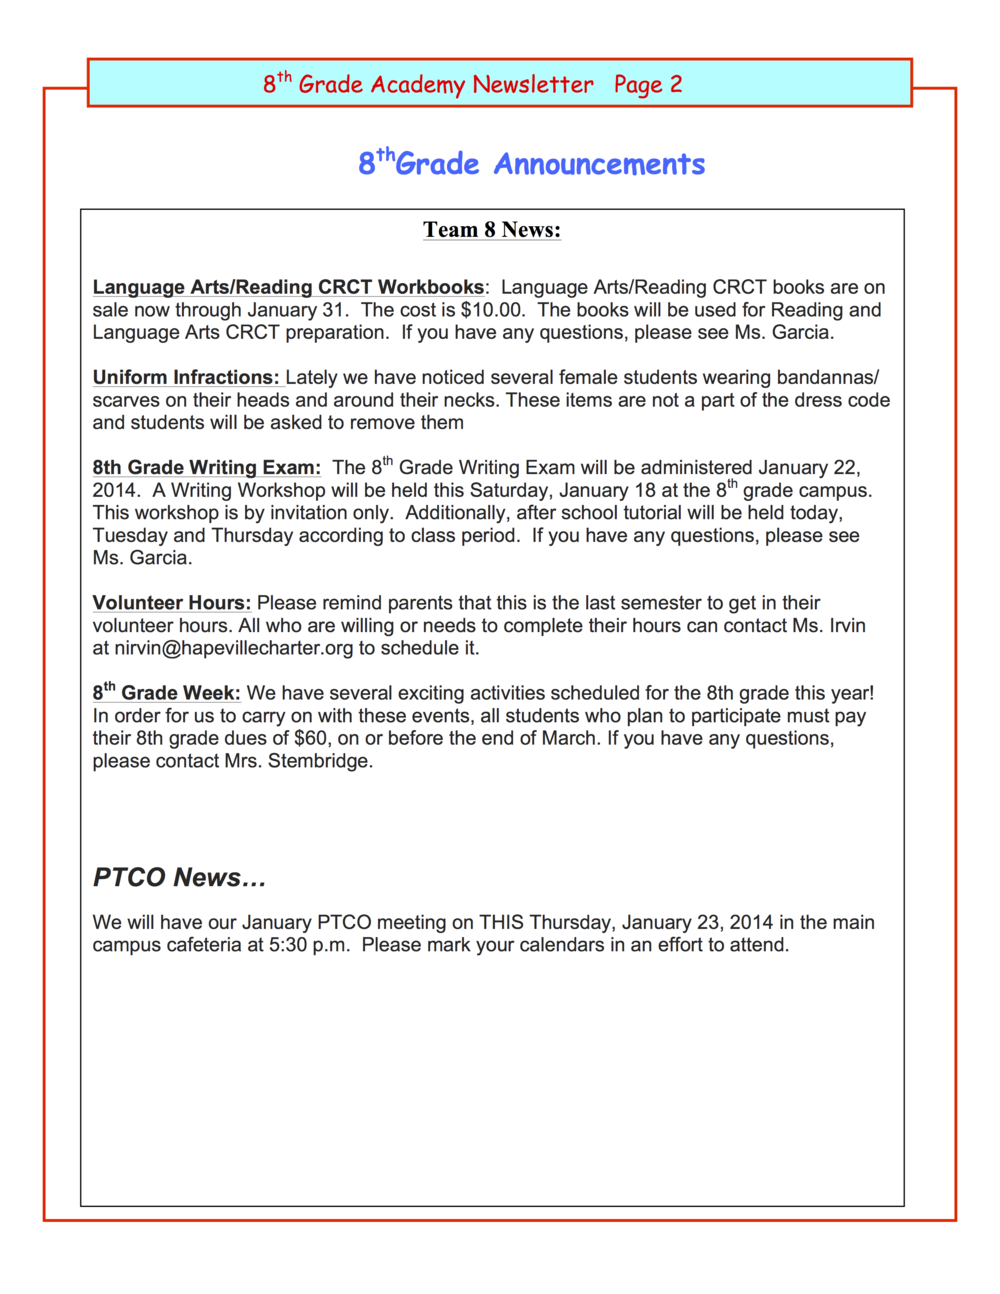 8th grade newsletter 1-21B.png